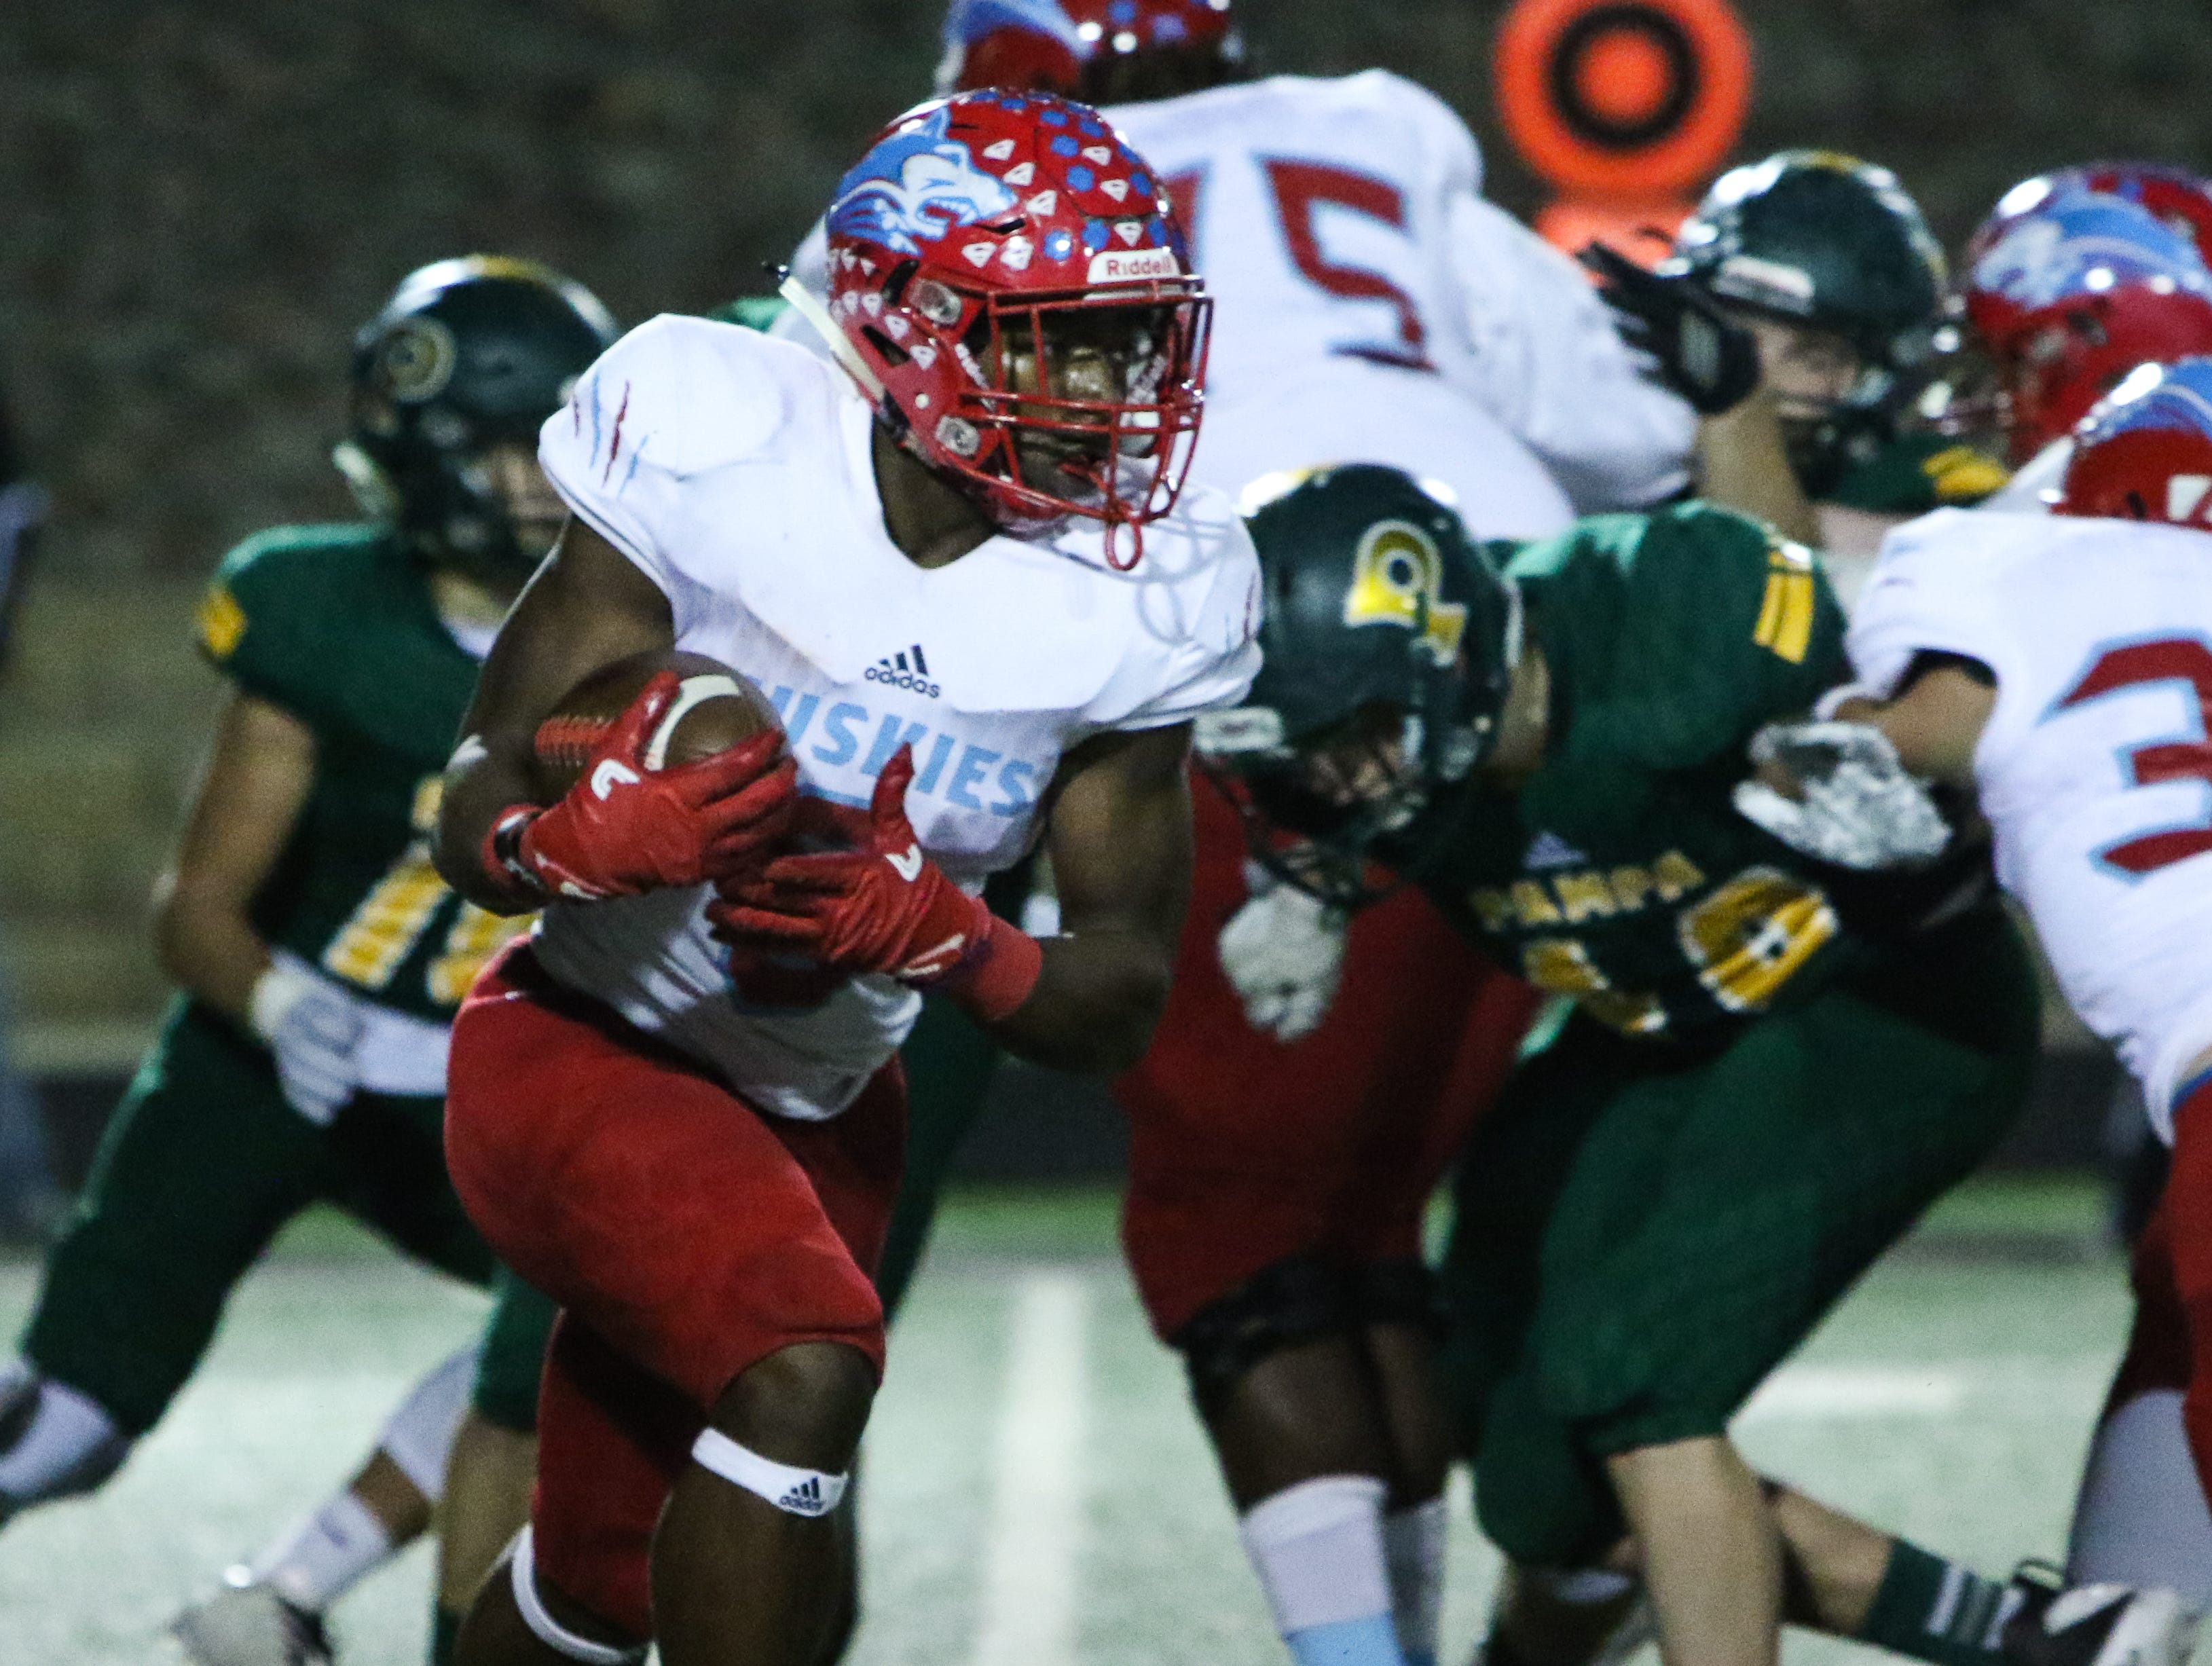 Hirschi's Daimarqua Foster runs through a hole in the line of scrimmage against Pampa Friday, Nov. 16, 2018, in the Region I-4A bi-district game in Vernon.